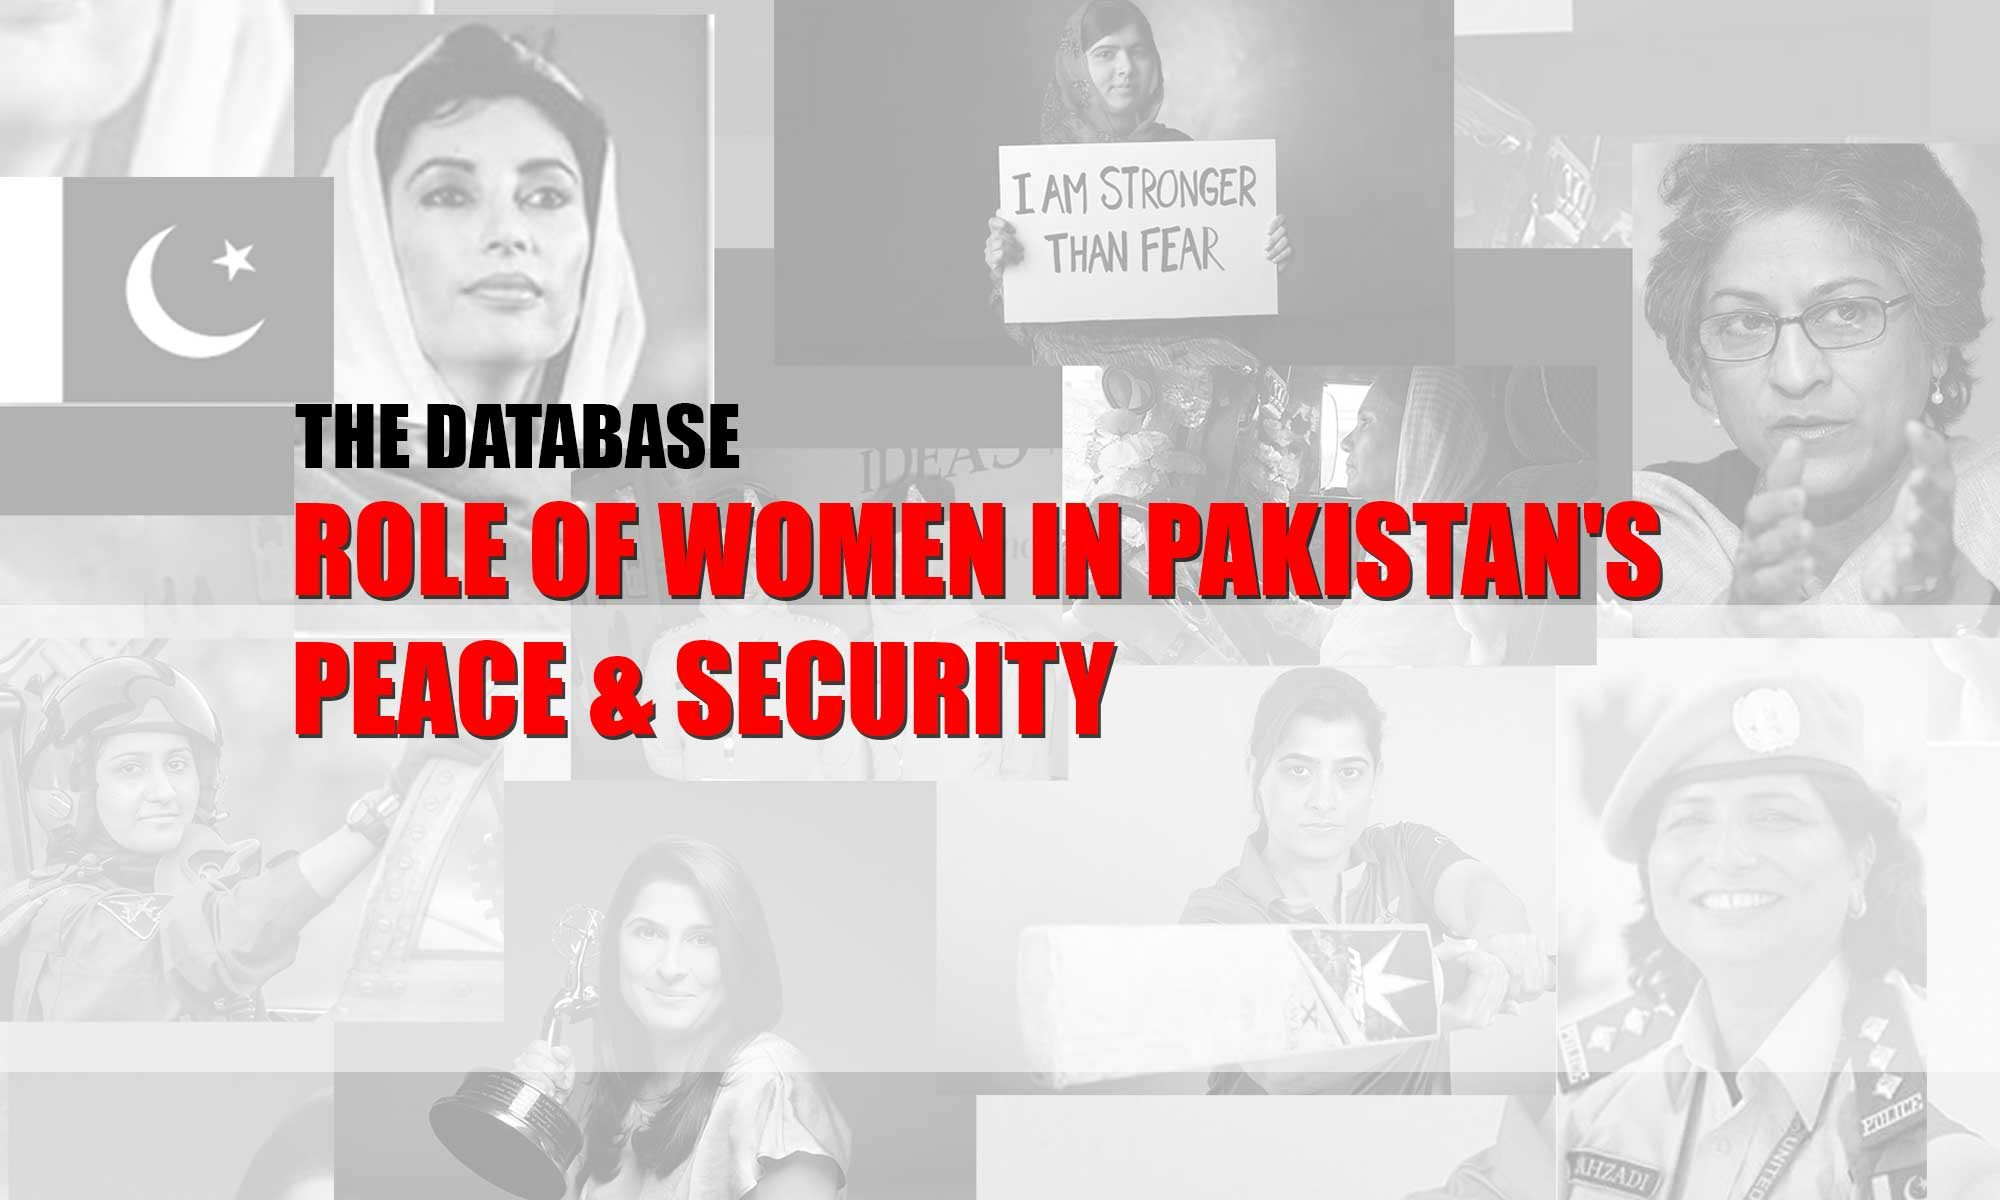 Role of Women in Pakistan's Peace & Security